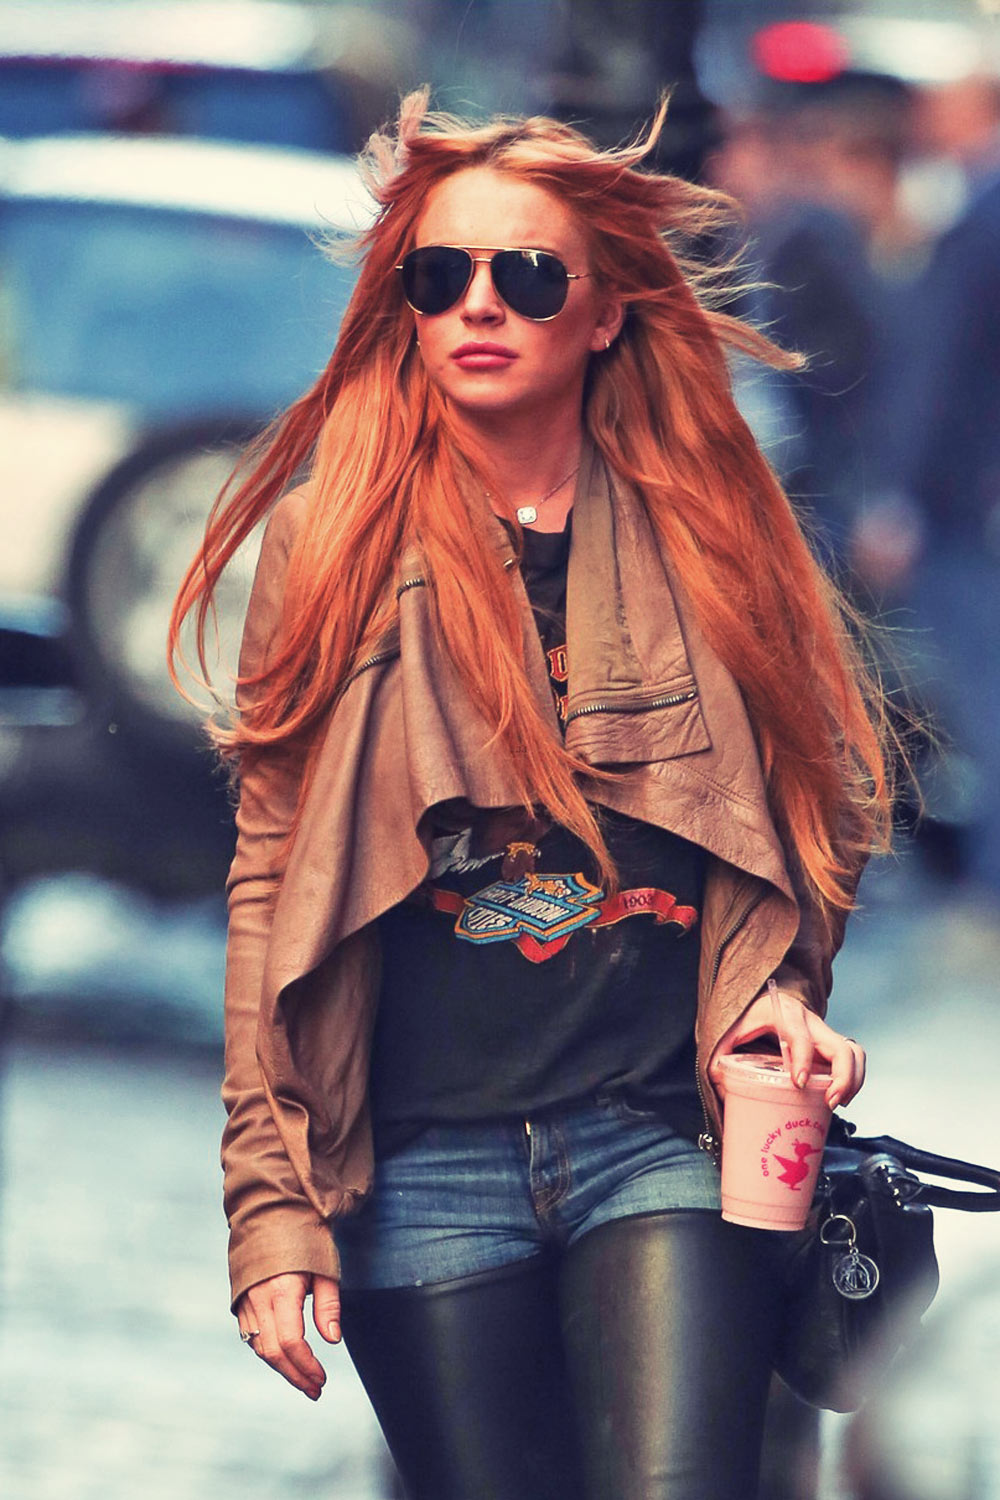 Lindsay Lohan walks around the SoHo neighborhood